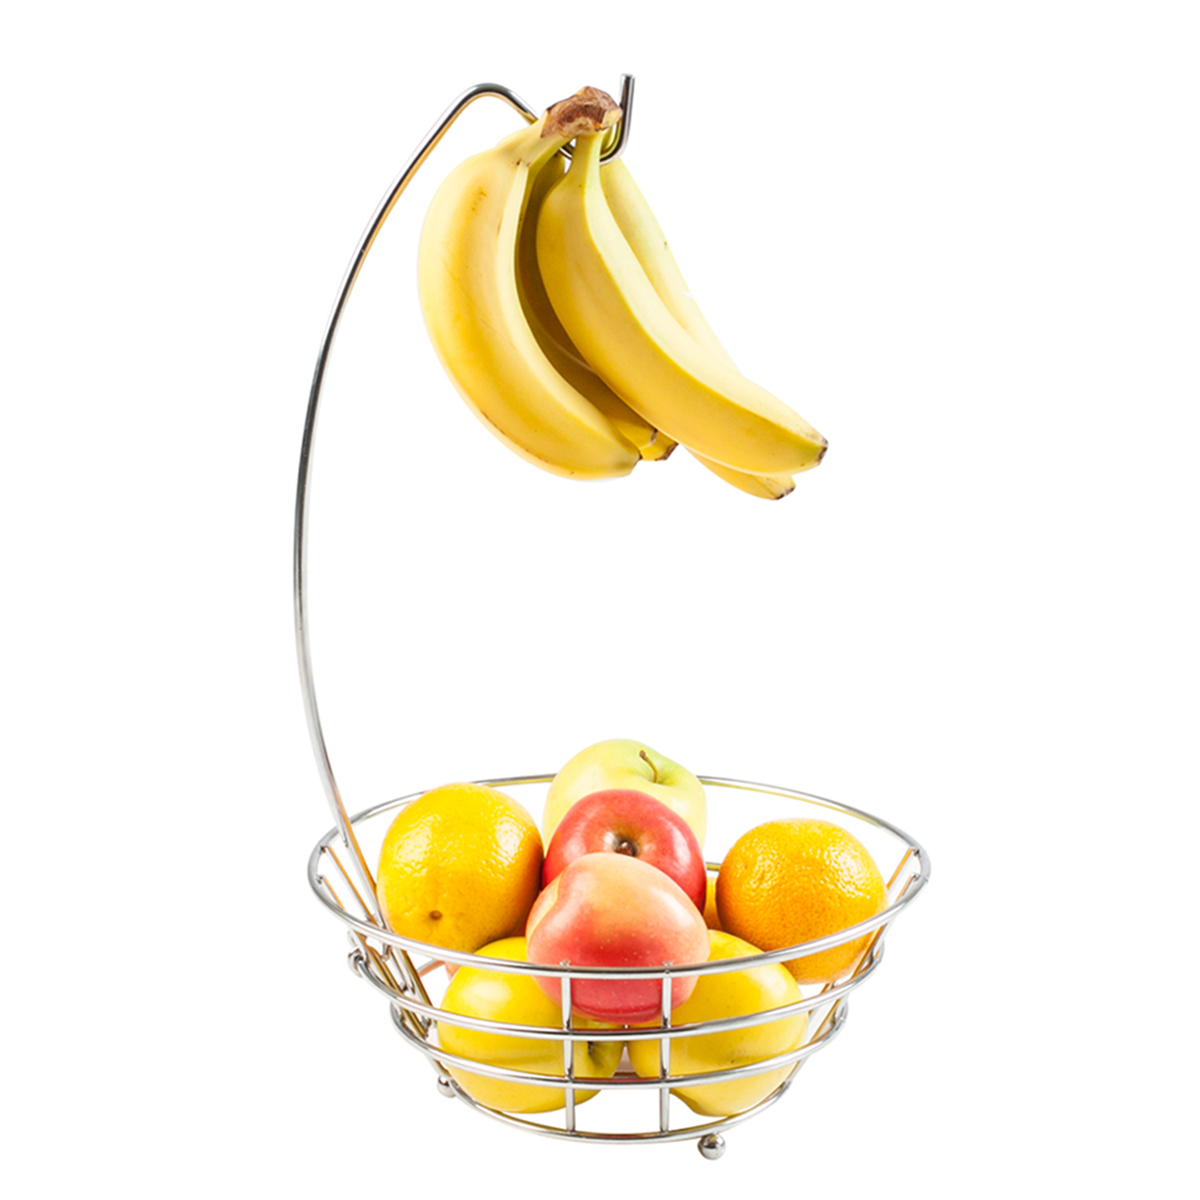 Table Top Fruit Basket 2 Metal Chrome Wire Banana Grape Hanger Kitchen Fruit